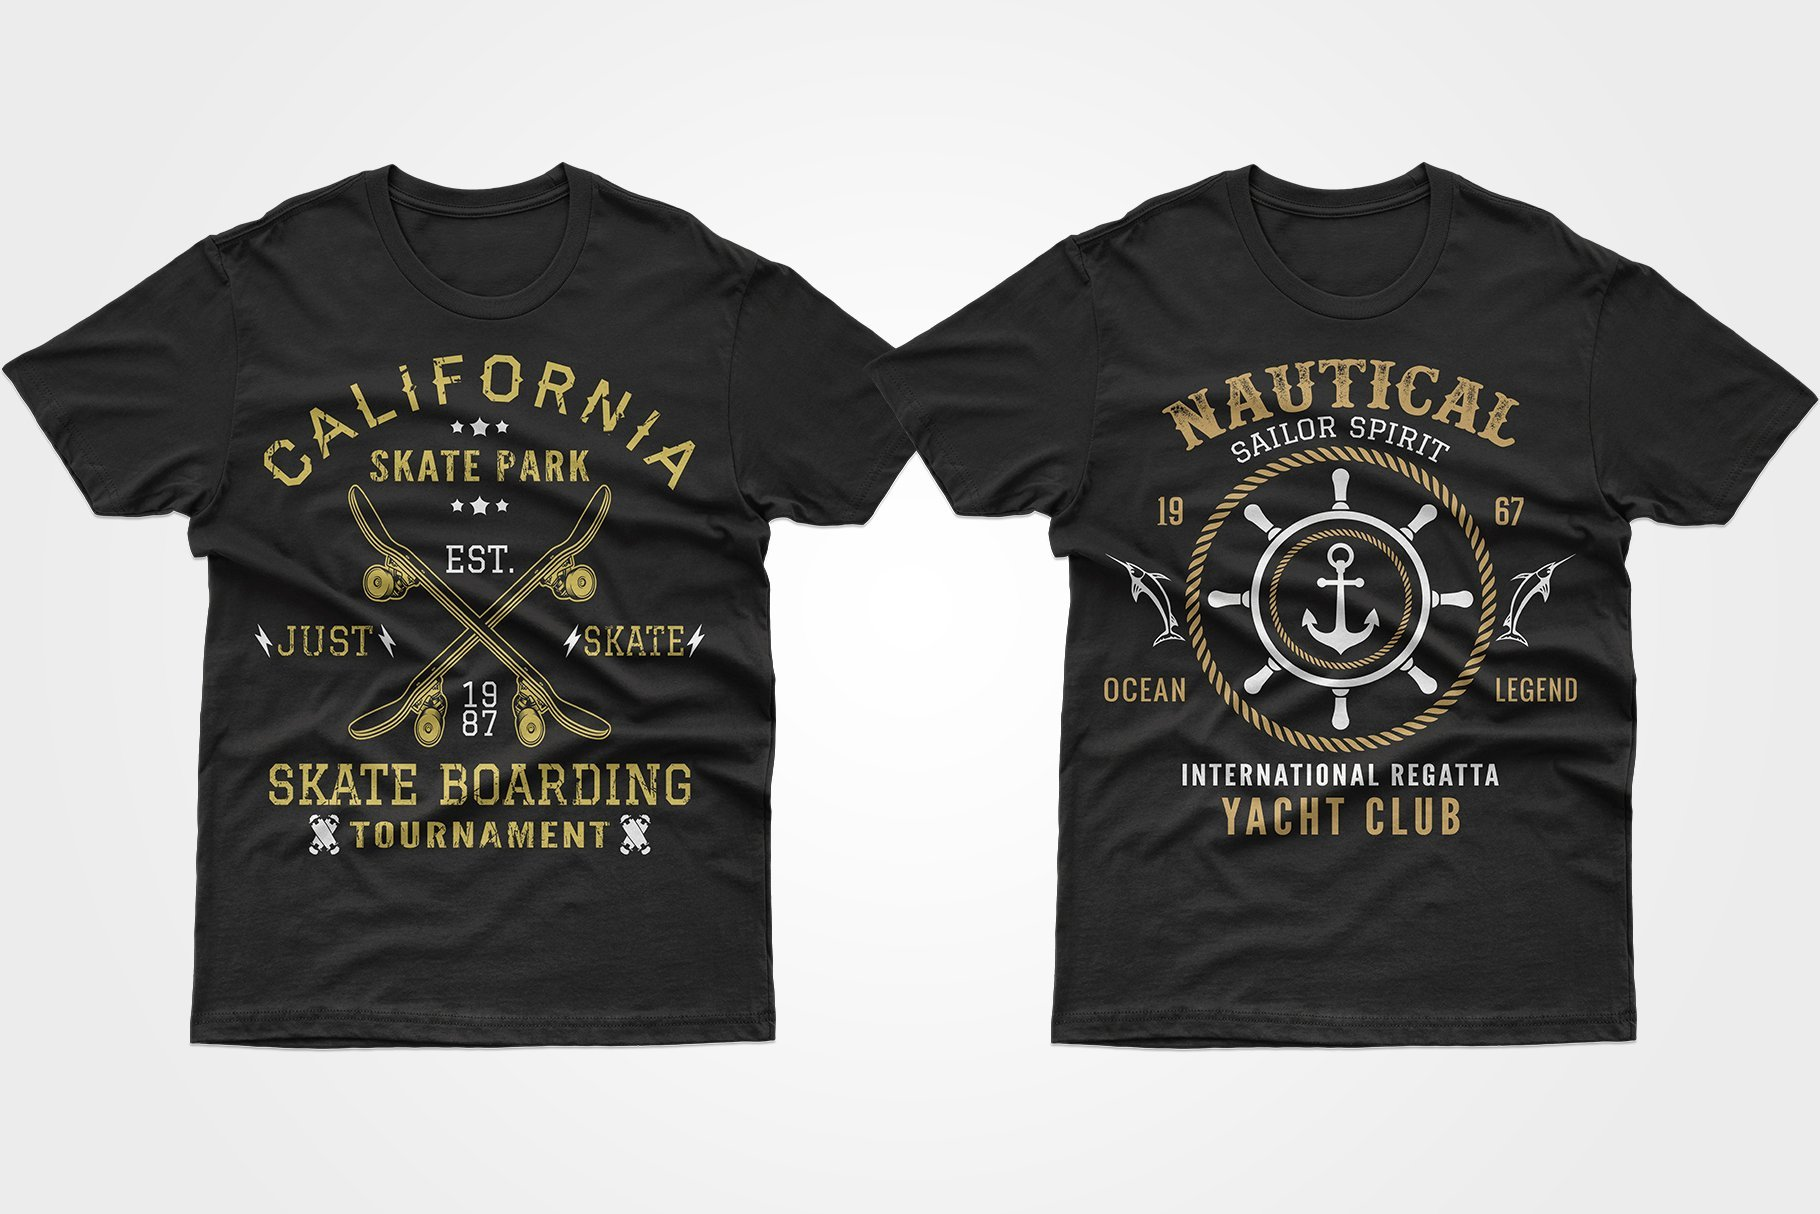 Two black T-shirts - one with crossed skates, the other is a regatta poster.